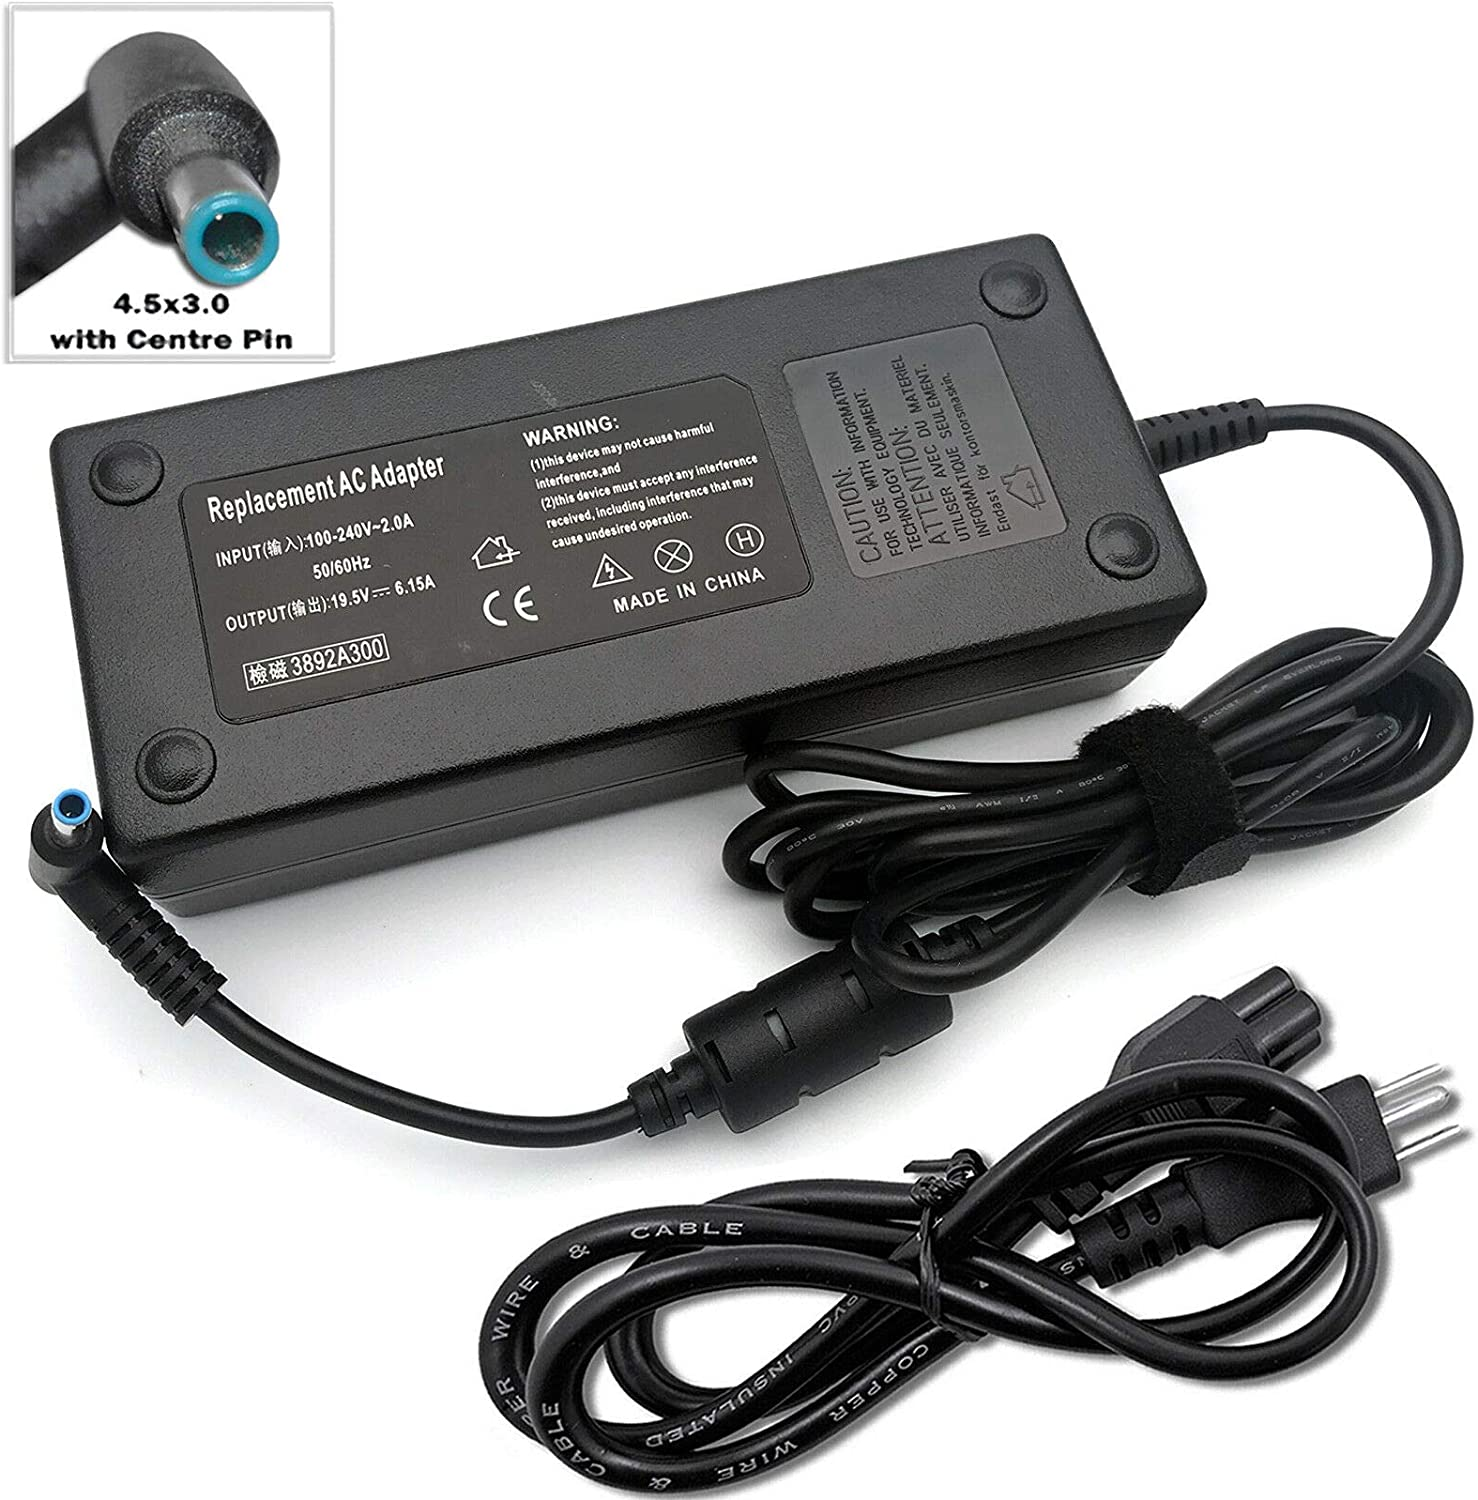 120W AC/DC Adapter Compatible with HP Envy 15-j092nr,710415-001 Notebook Power Supply Battery Charger Cord PSU